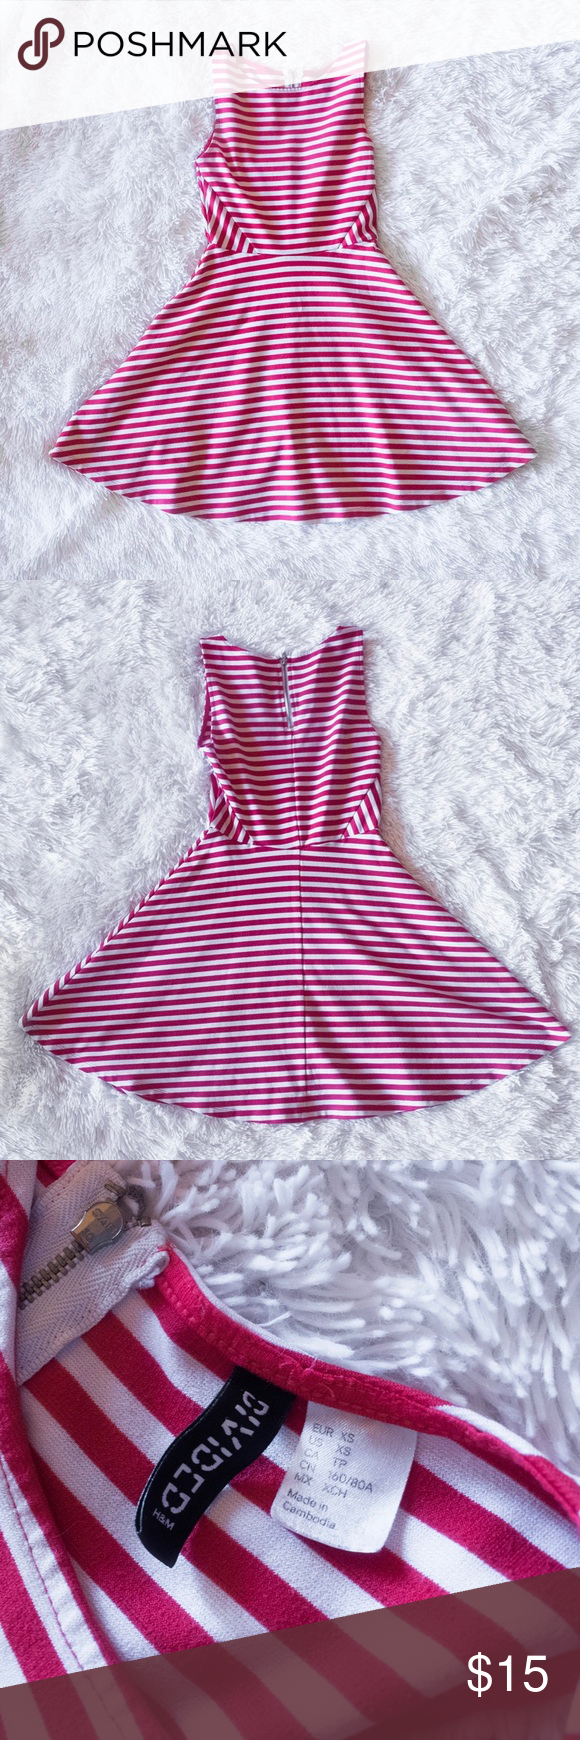 7a4ad15ae7 H M Red Striped Skater Dress XS - H M Divided XS - Red and white stripes -  Zipper in the back - Great condition H M Dresses Mini